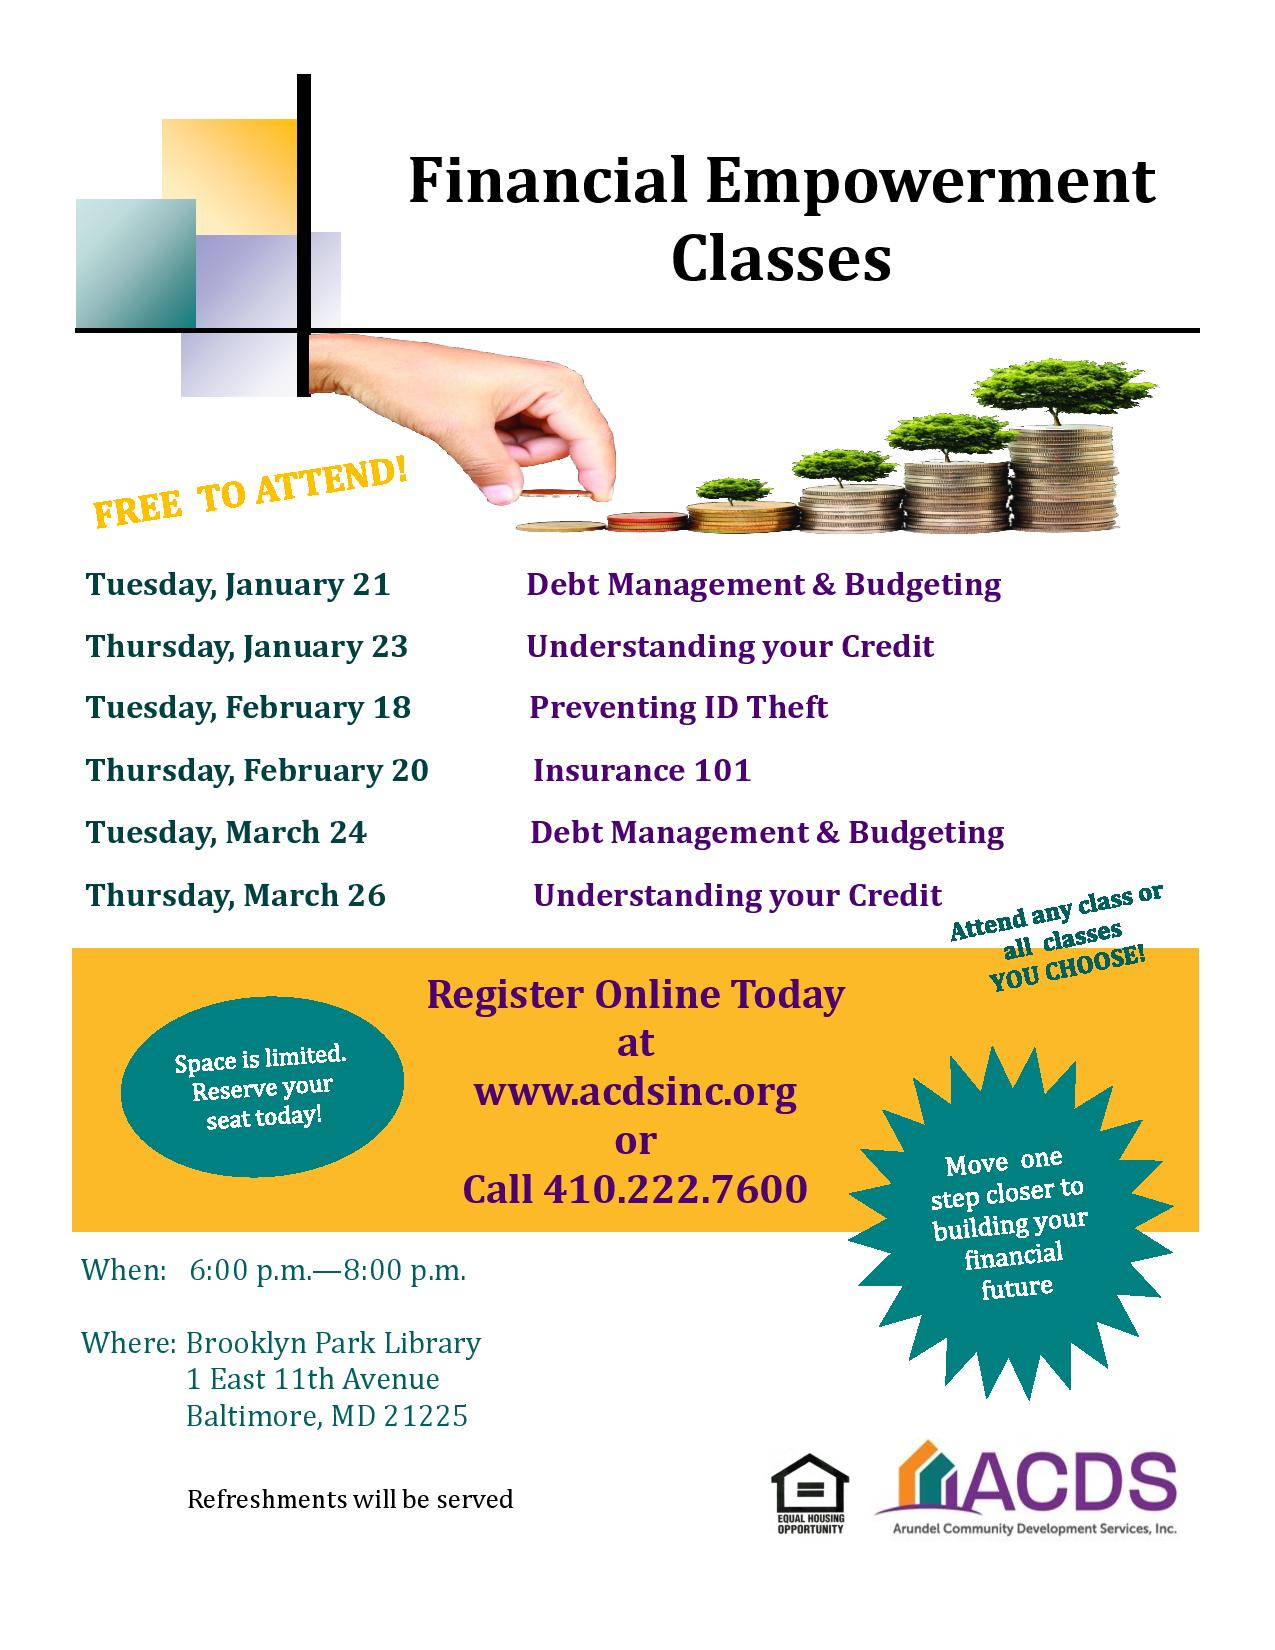 Flyer for financial empowerment classes